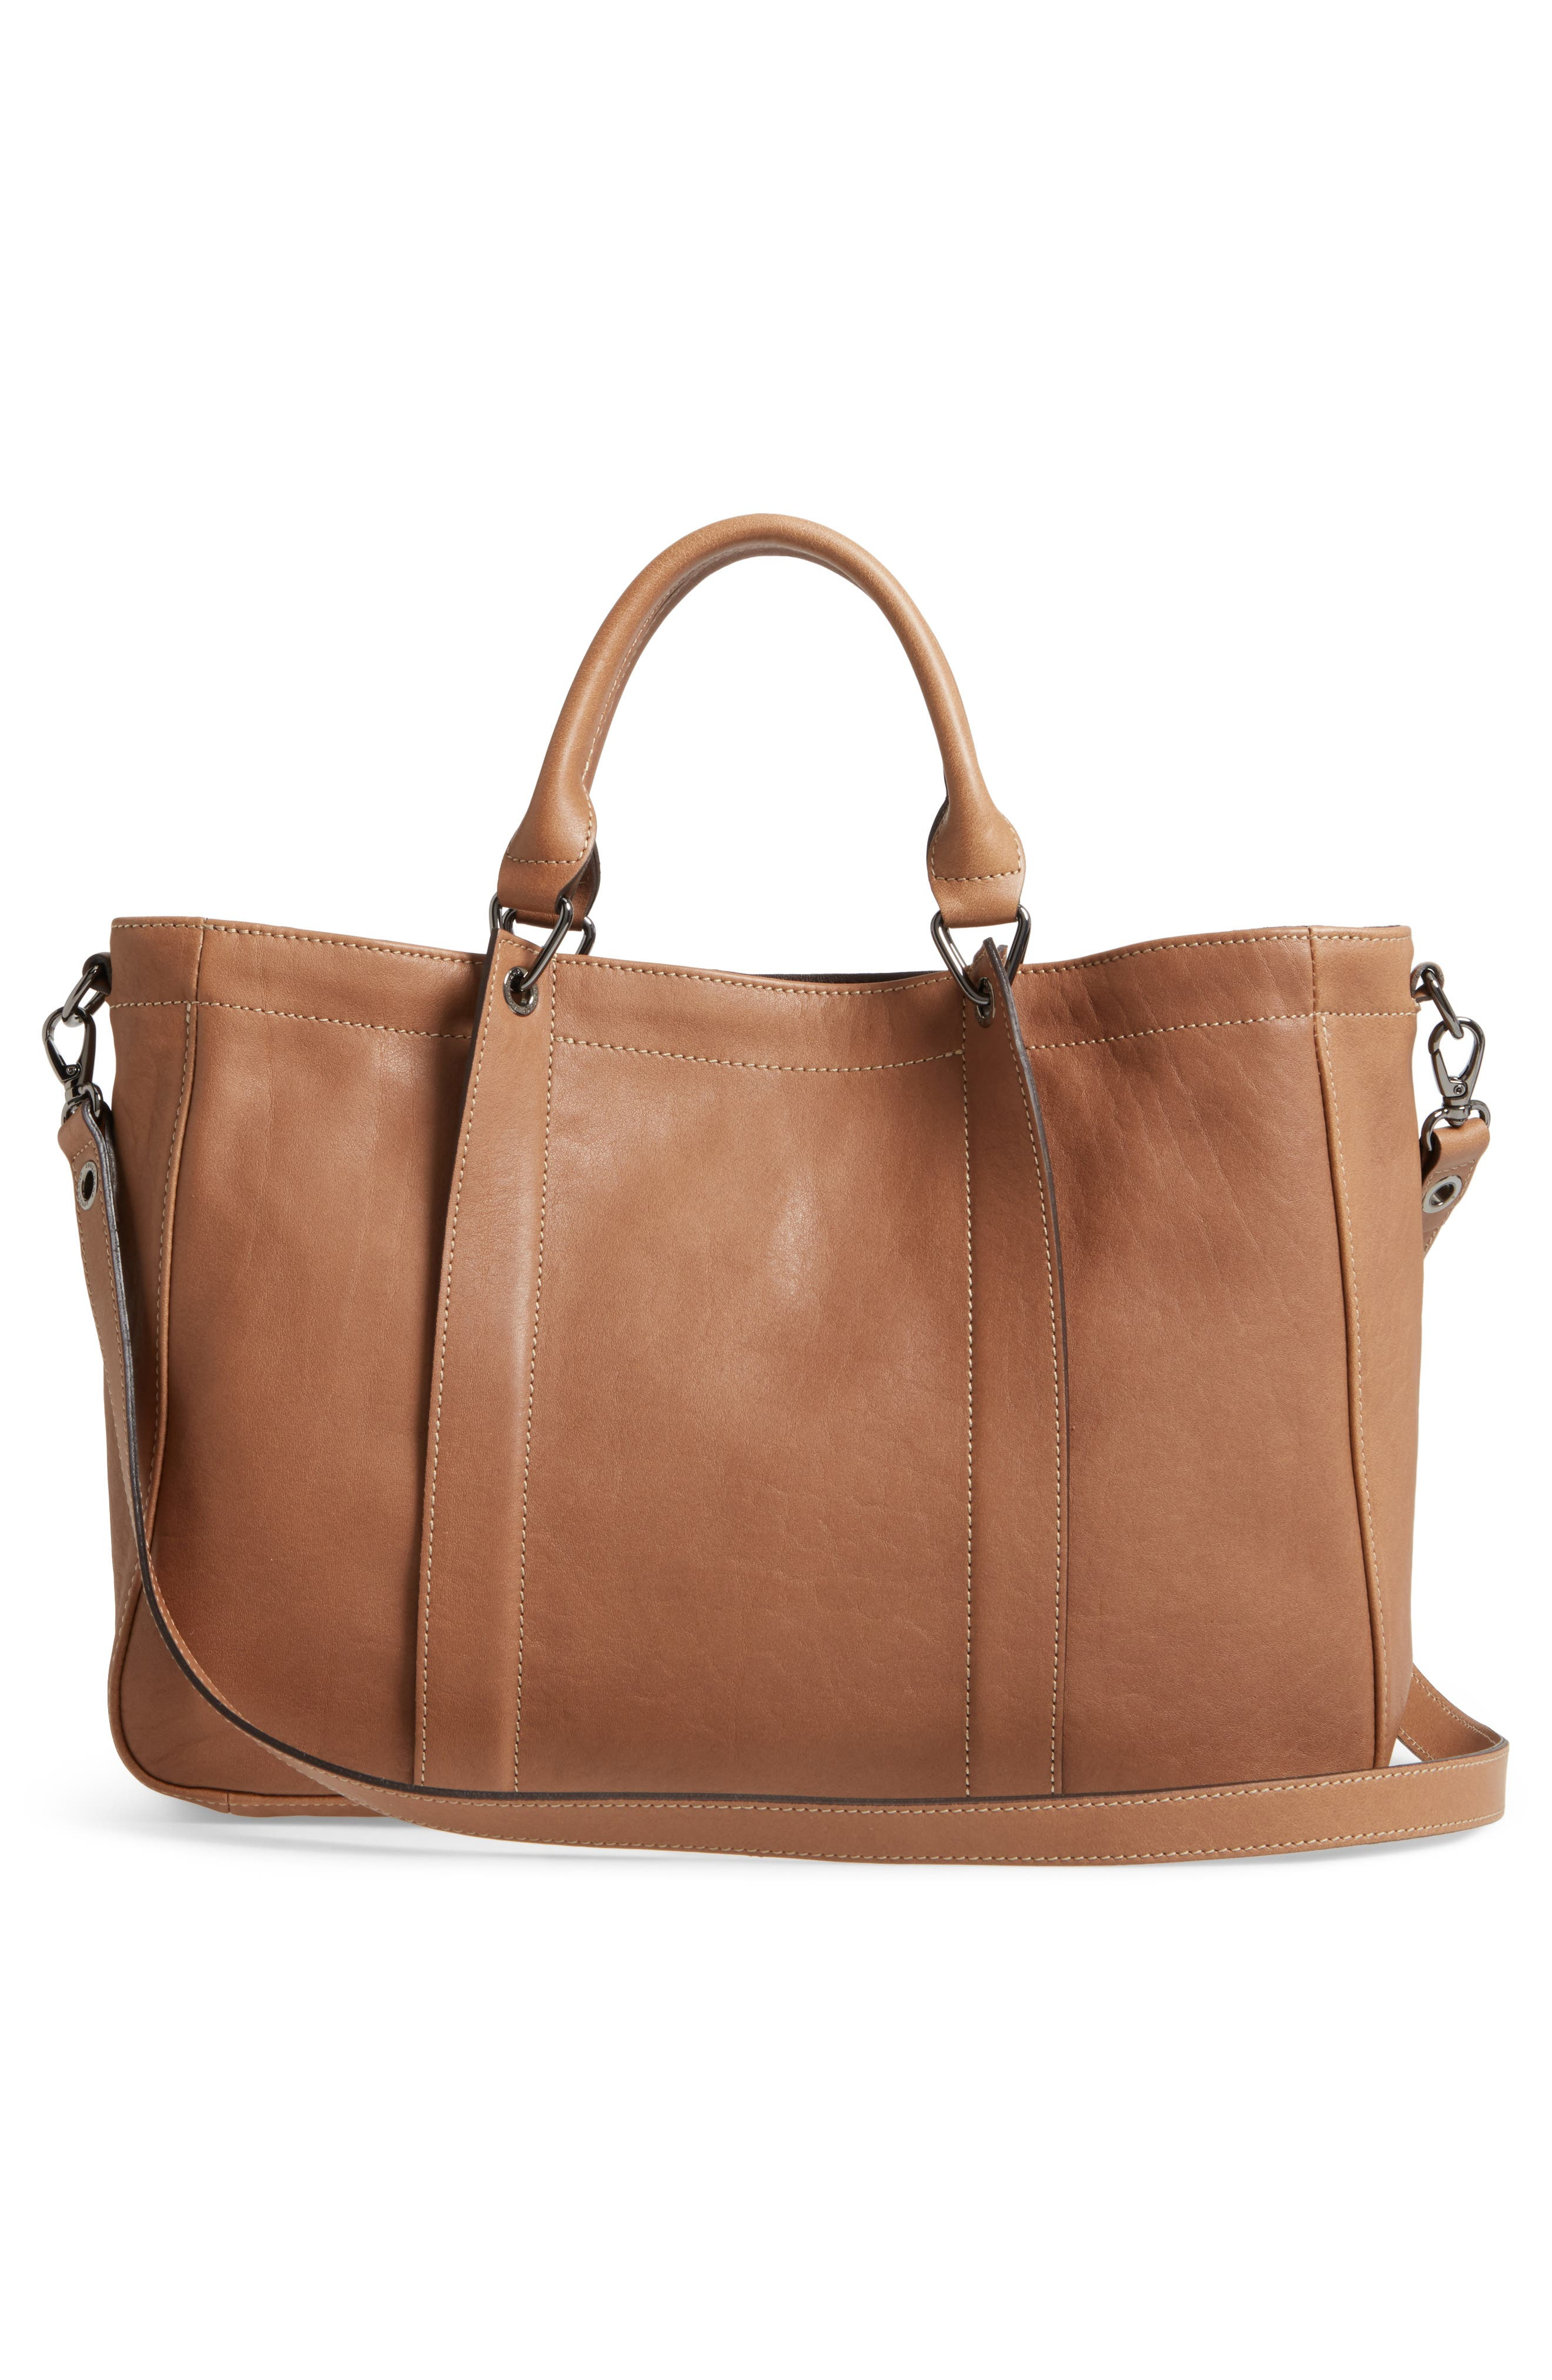 3D Leather Tote,                             Alternate thumbnail 3, color,                             250